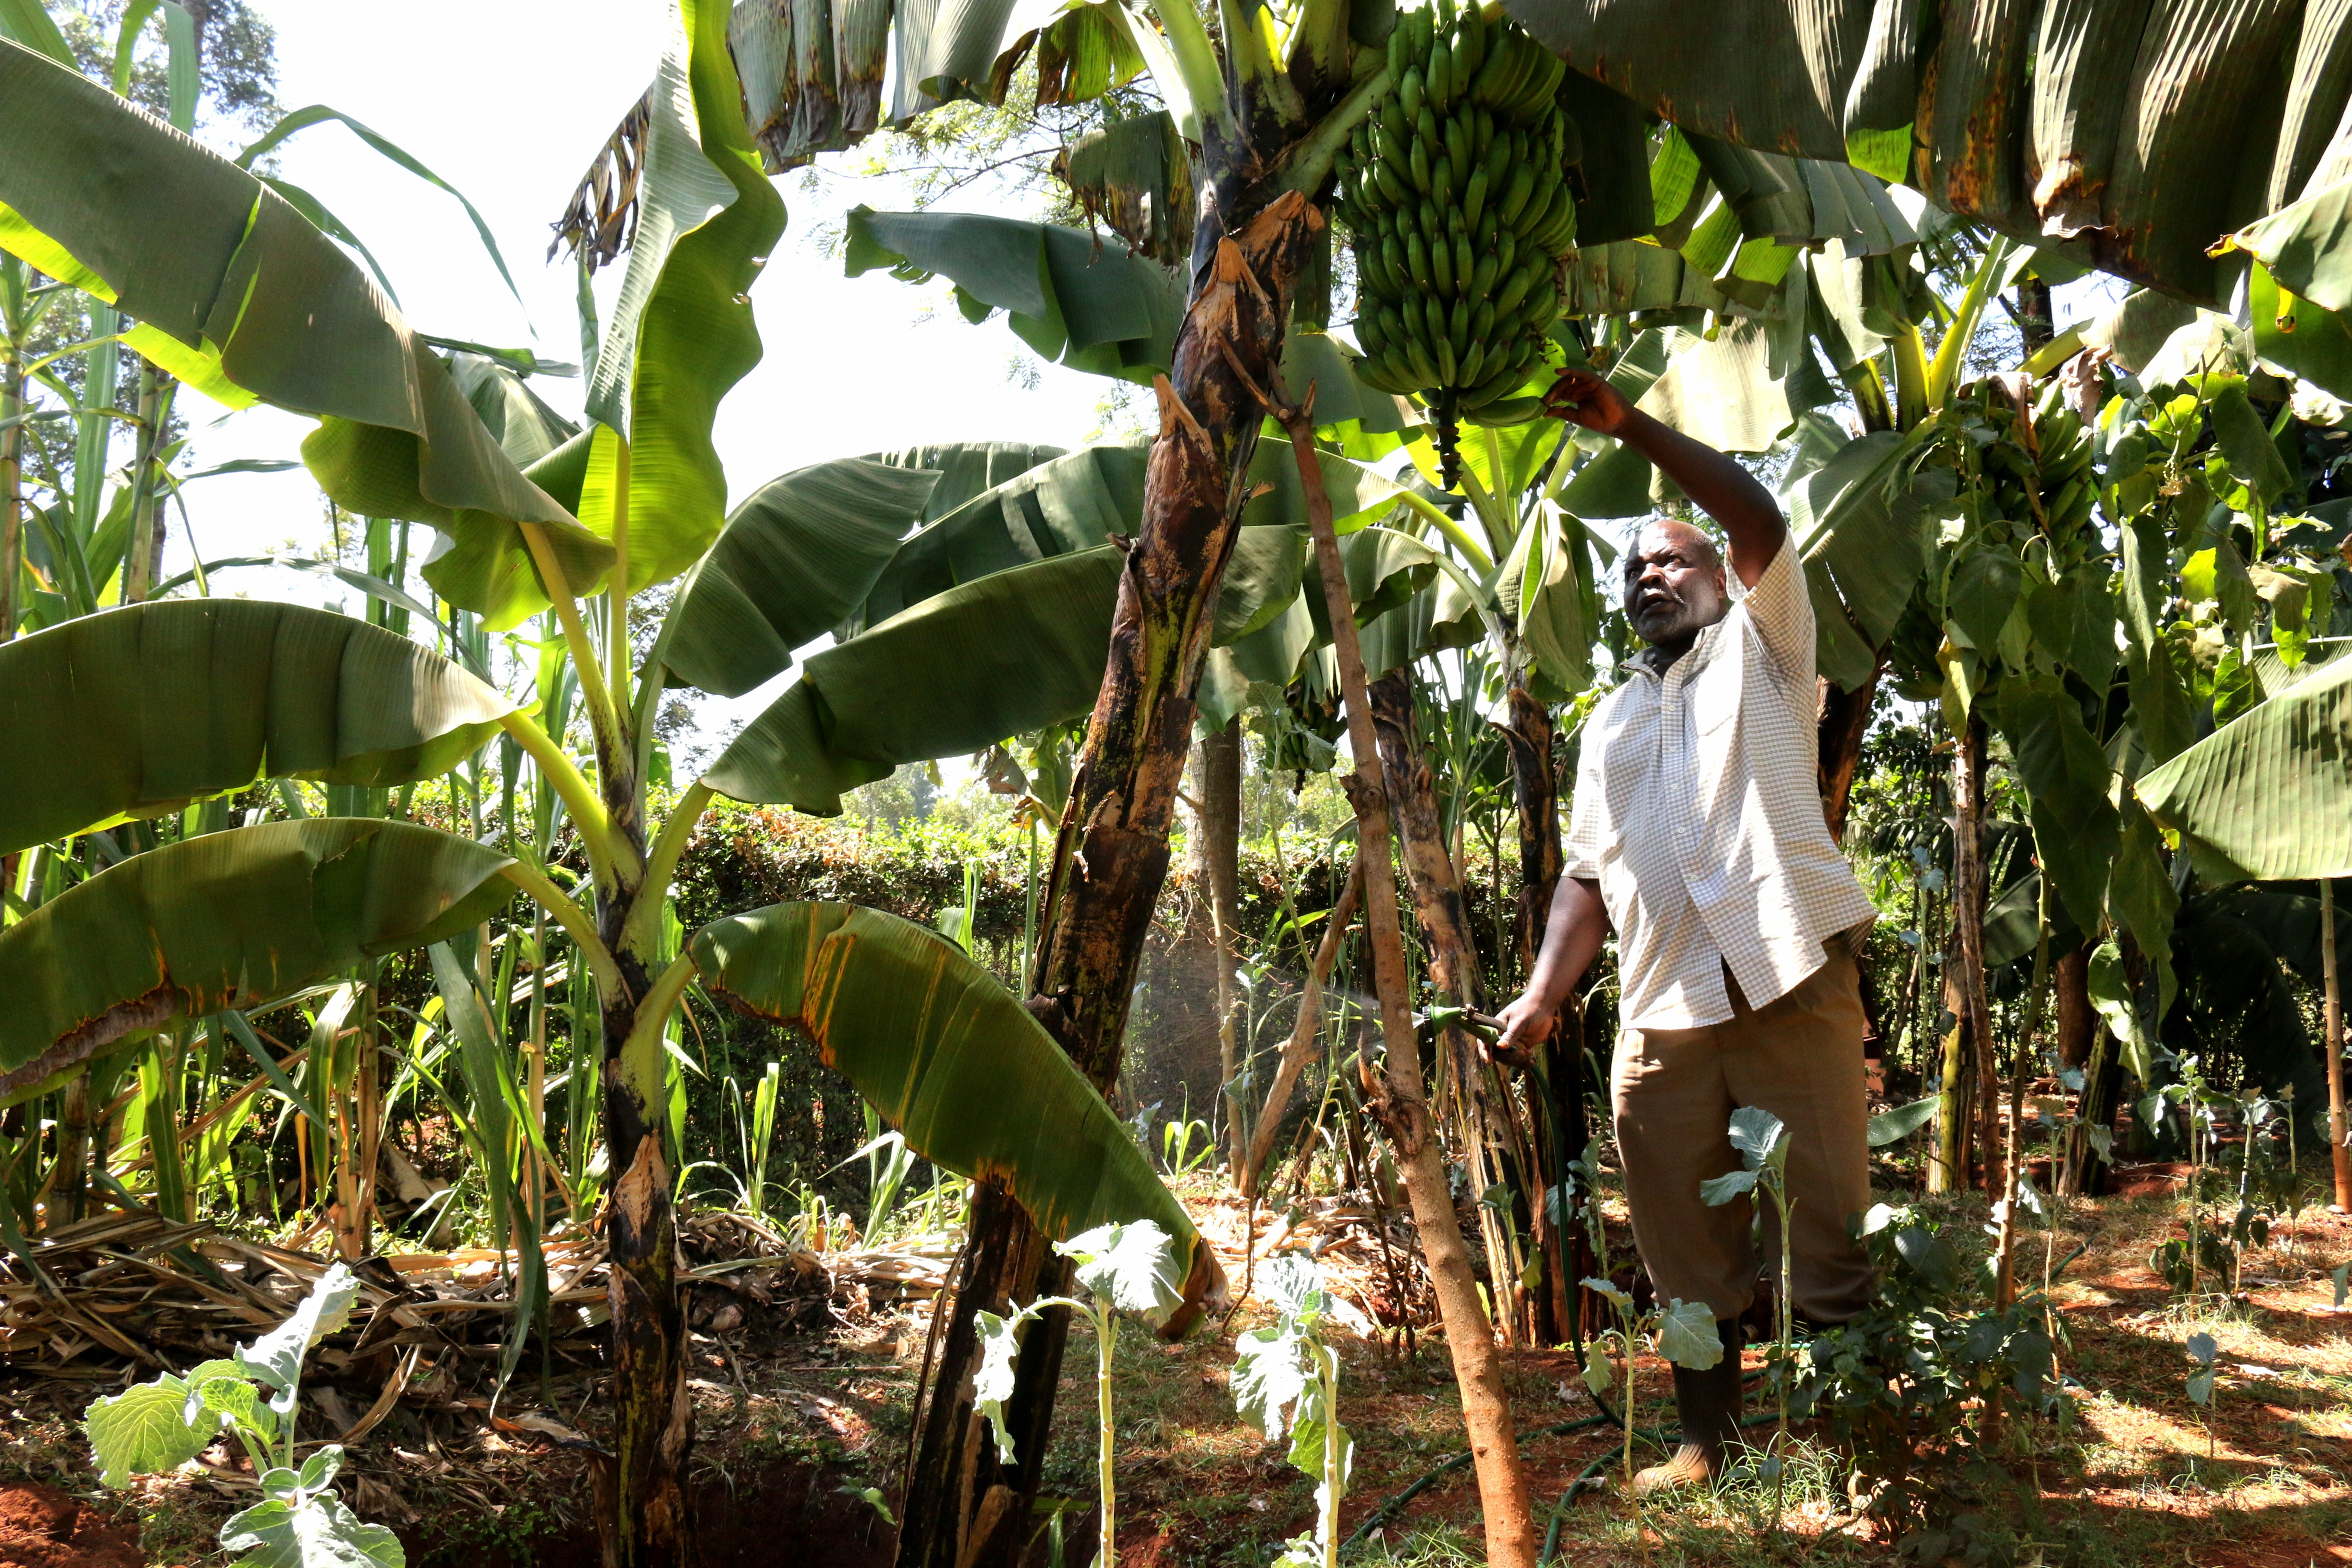 Banana grower, Kakamega, Kenya